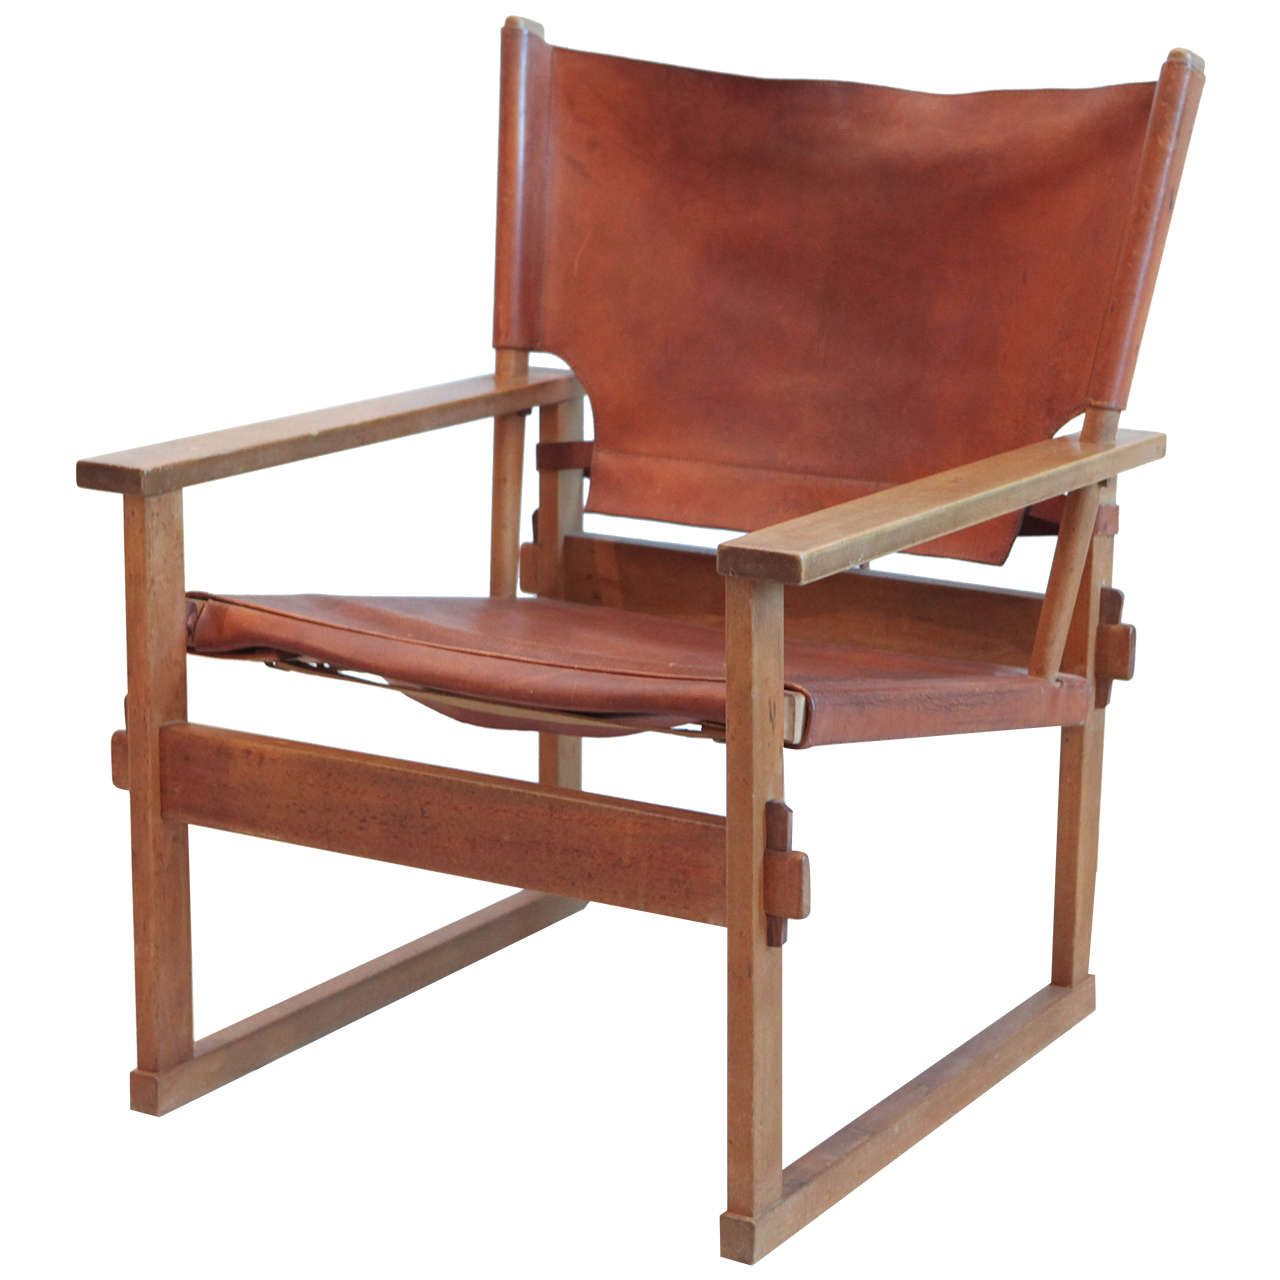 Image of: Safari Style Furniture Throughout Leather And Wood Safari Style Chair For Sale At 1stdibs